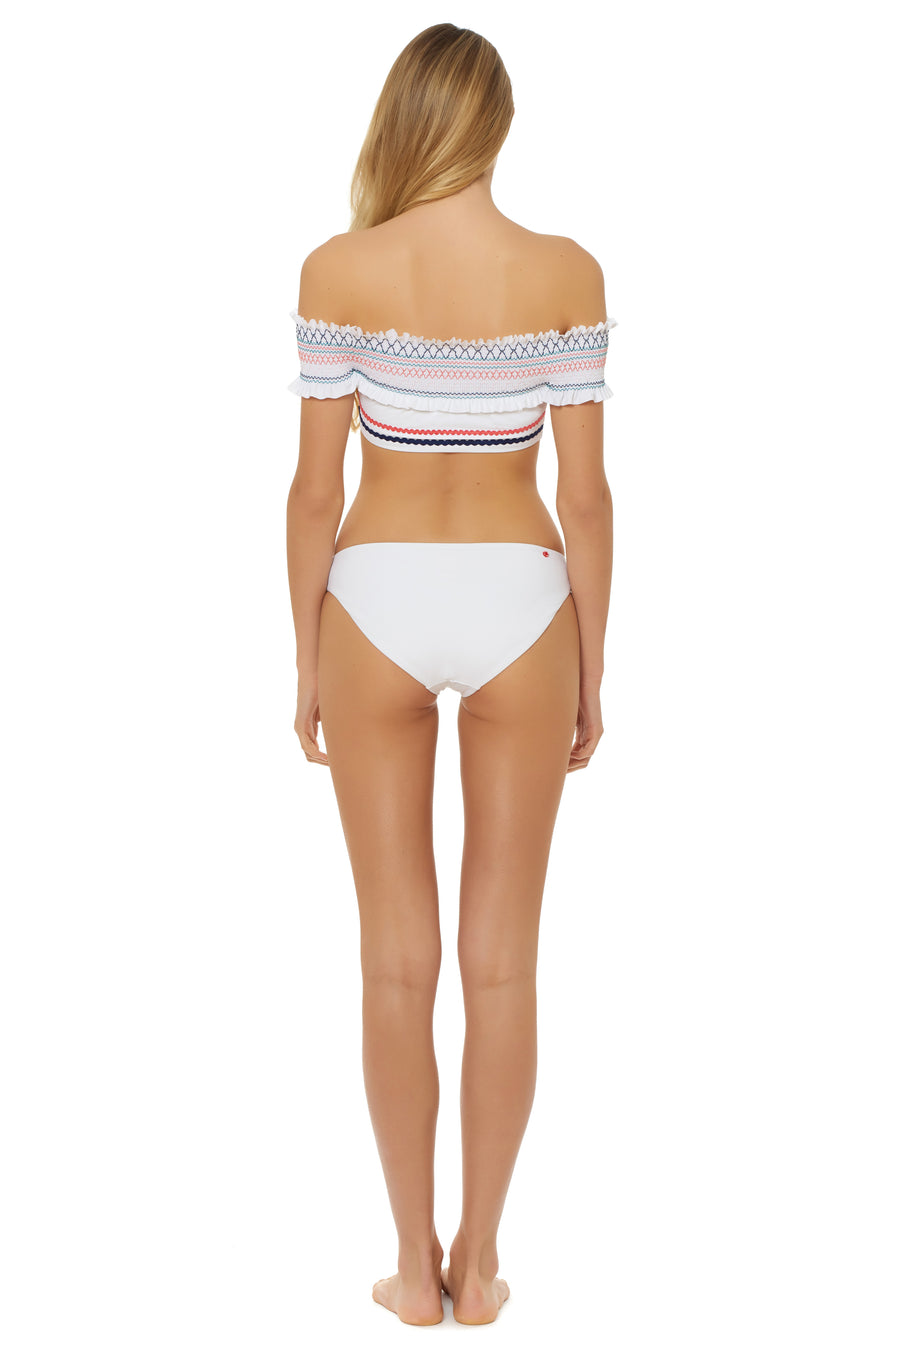 In Stitches Smocked Off Shoulder Bikini Top - White